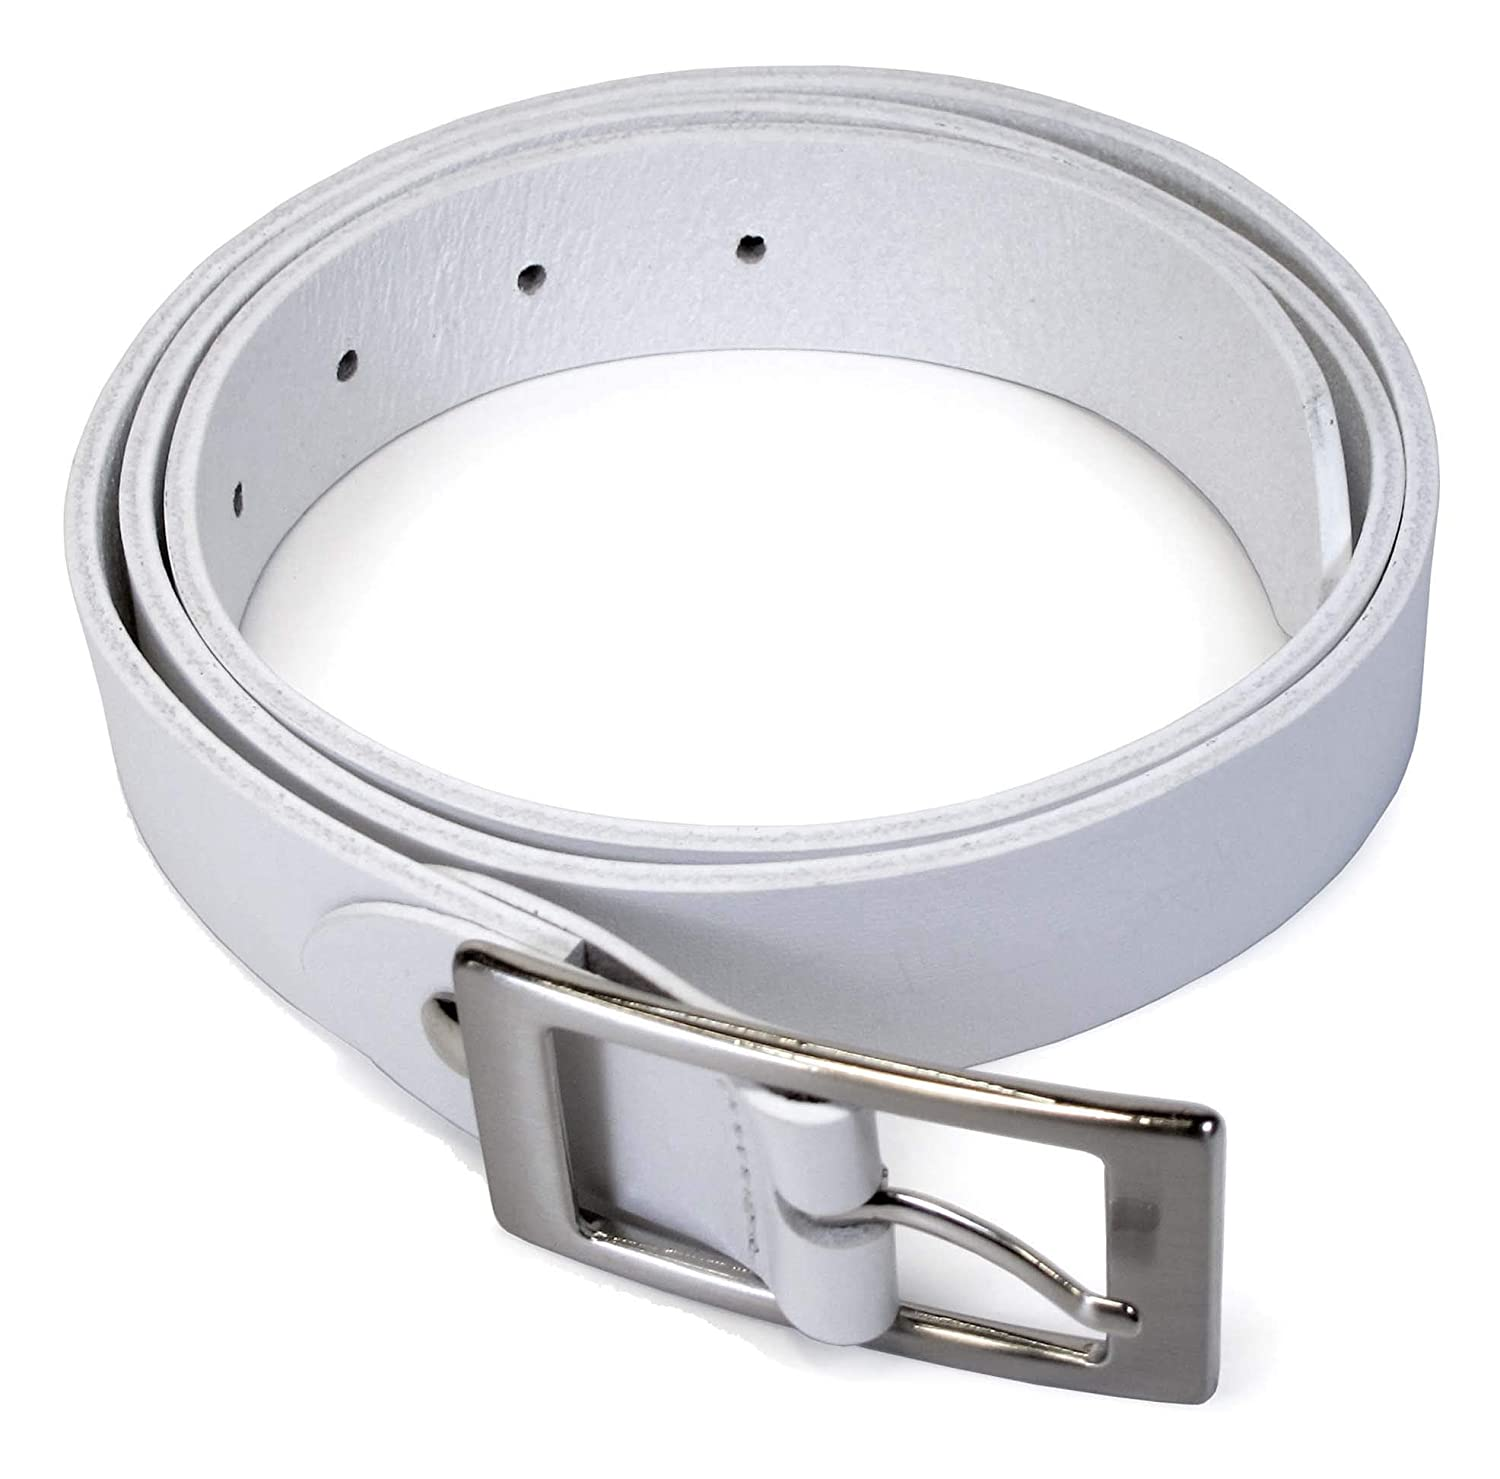 Mens Real Genuine Leather White Belt 1.1 Wide S-L Thick Long Casual Jeans CM0